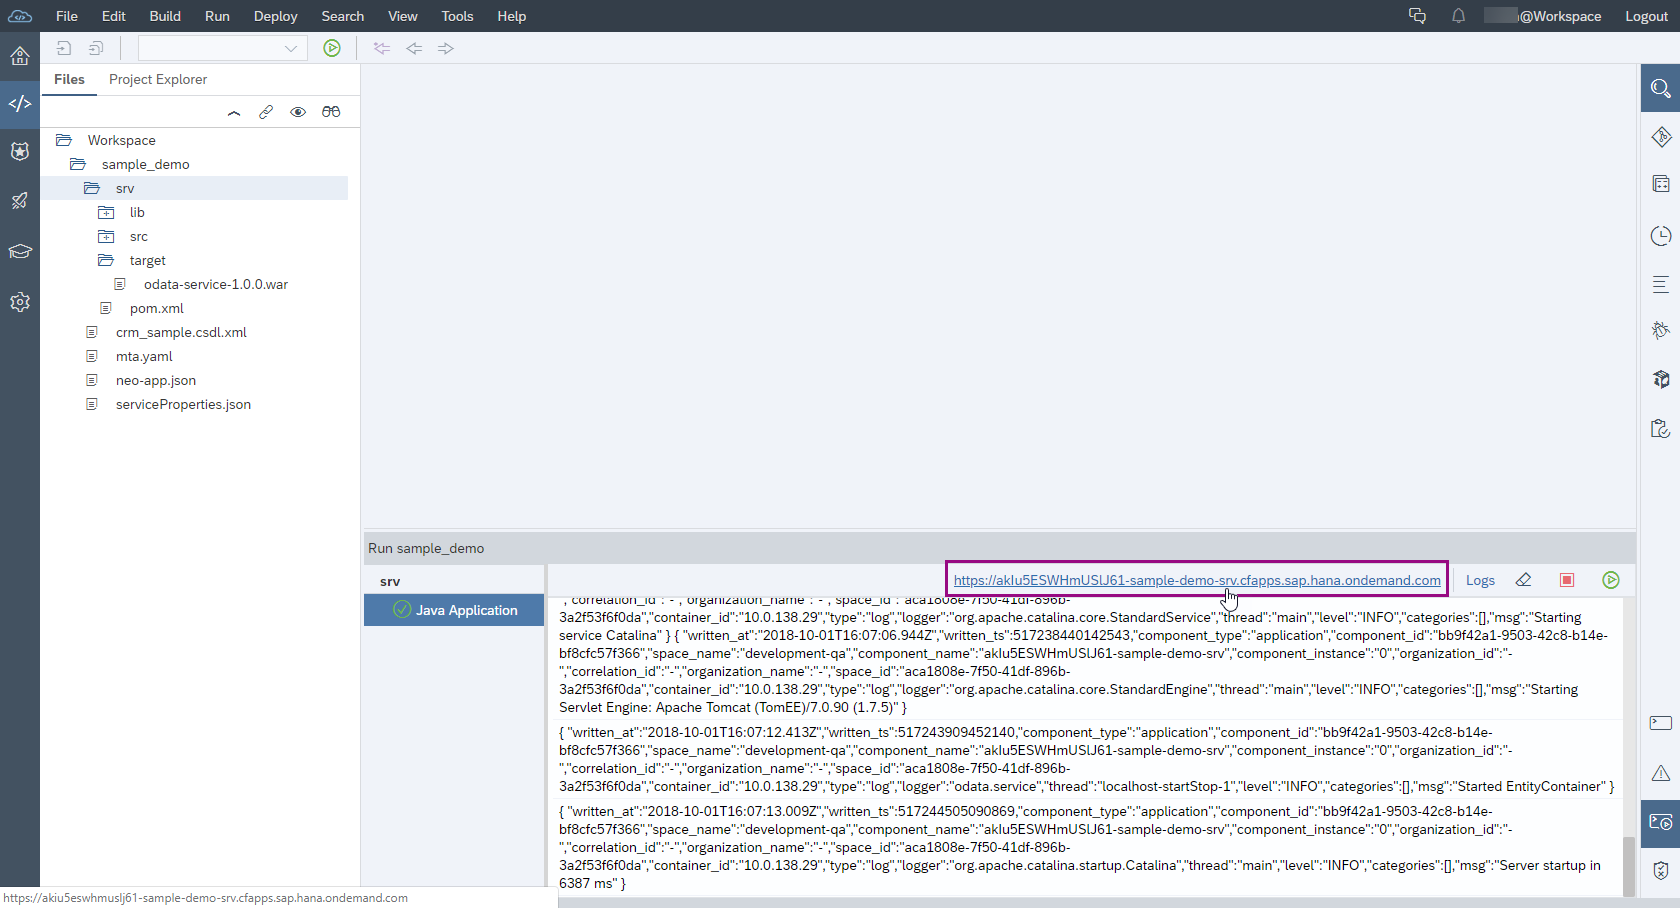 Guide to easily create and deploy an OData Service using our new